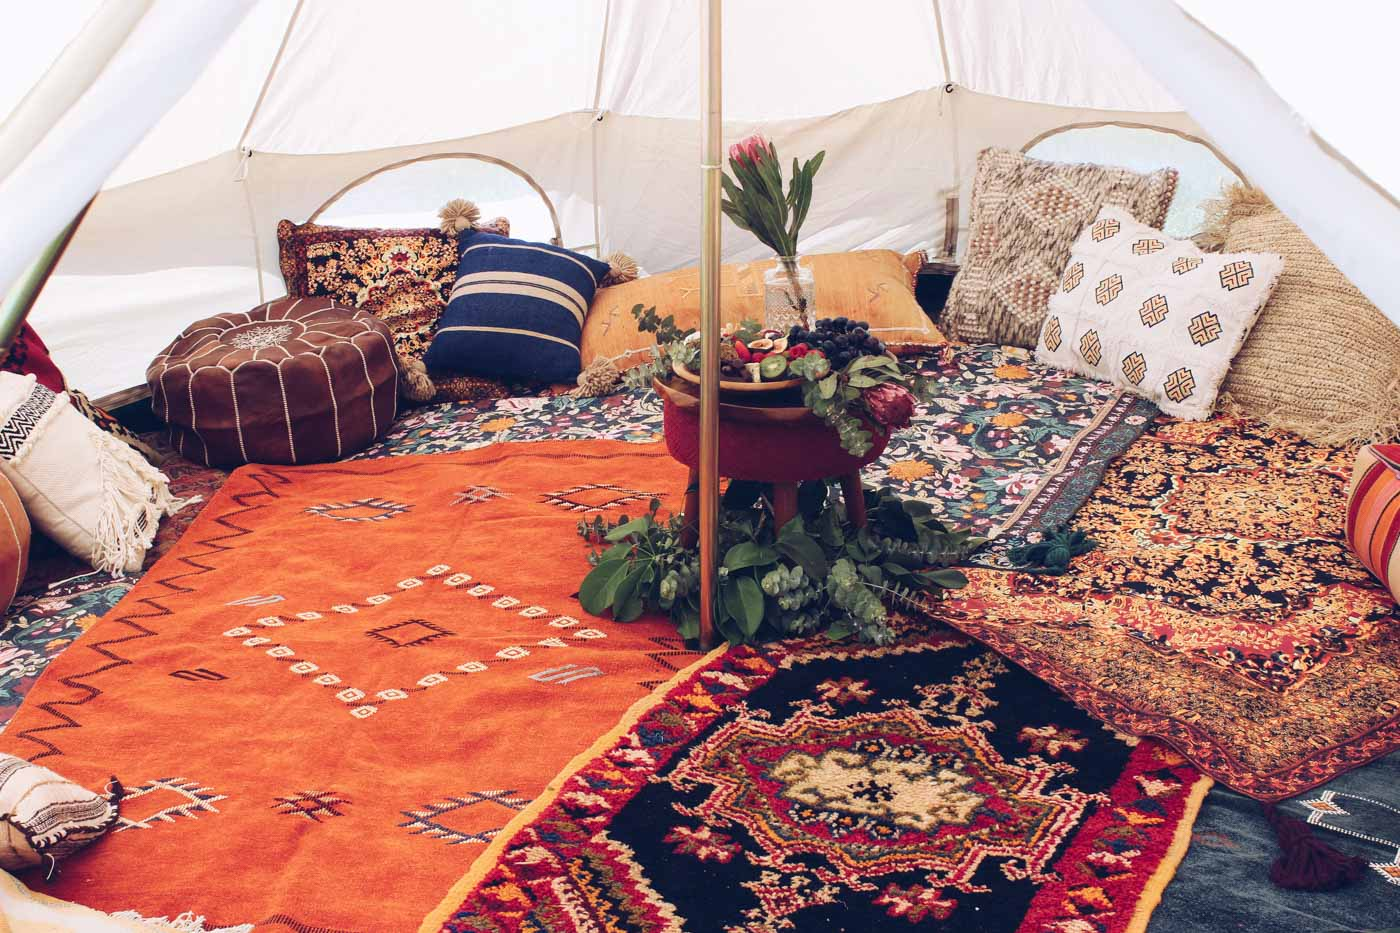 the_Collection_co_grazing_table_cairns_weddings_catering_grazing_platter_hire_pop_up_picnic_bell_tent_event_hire_styling-27-2.jpg